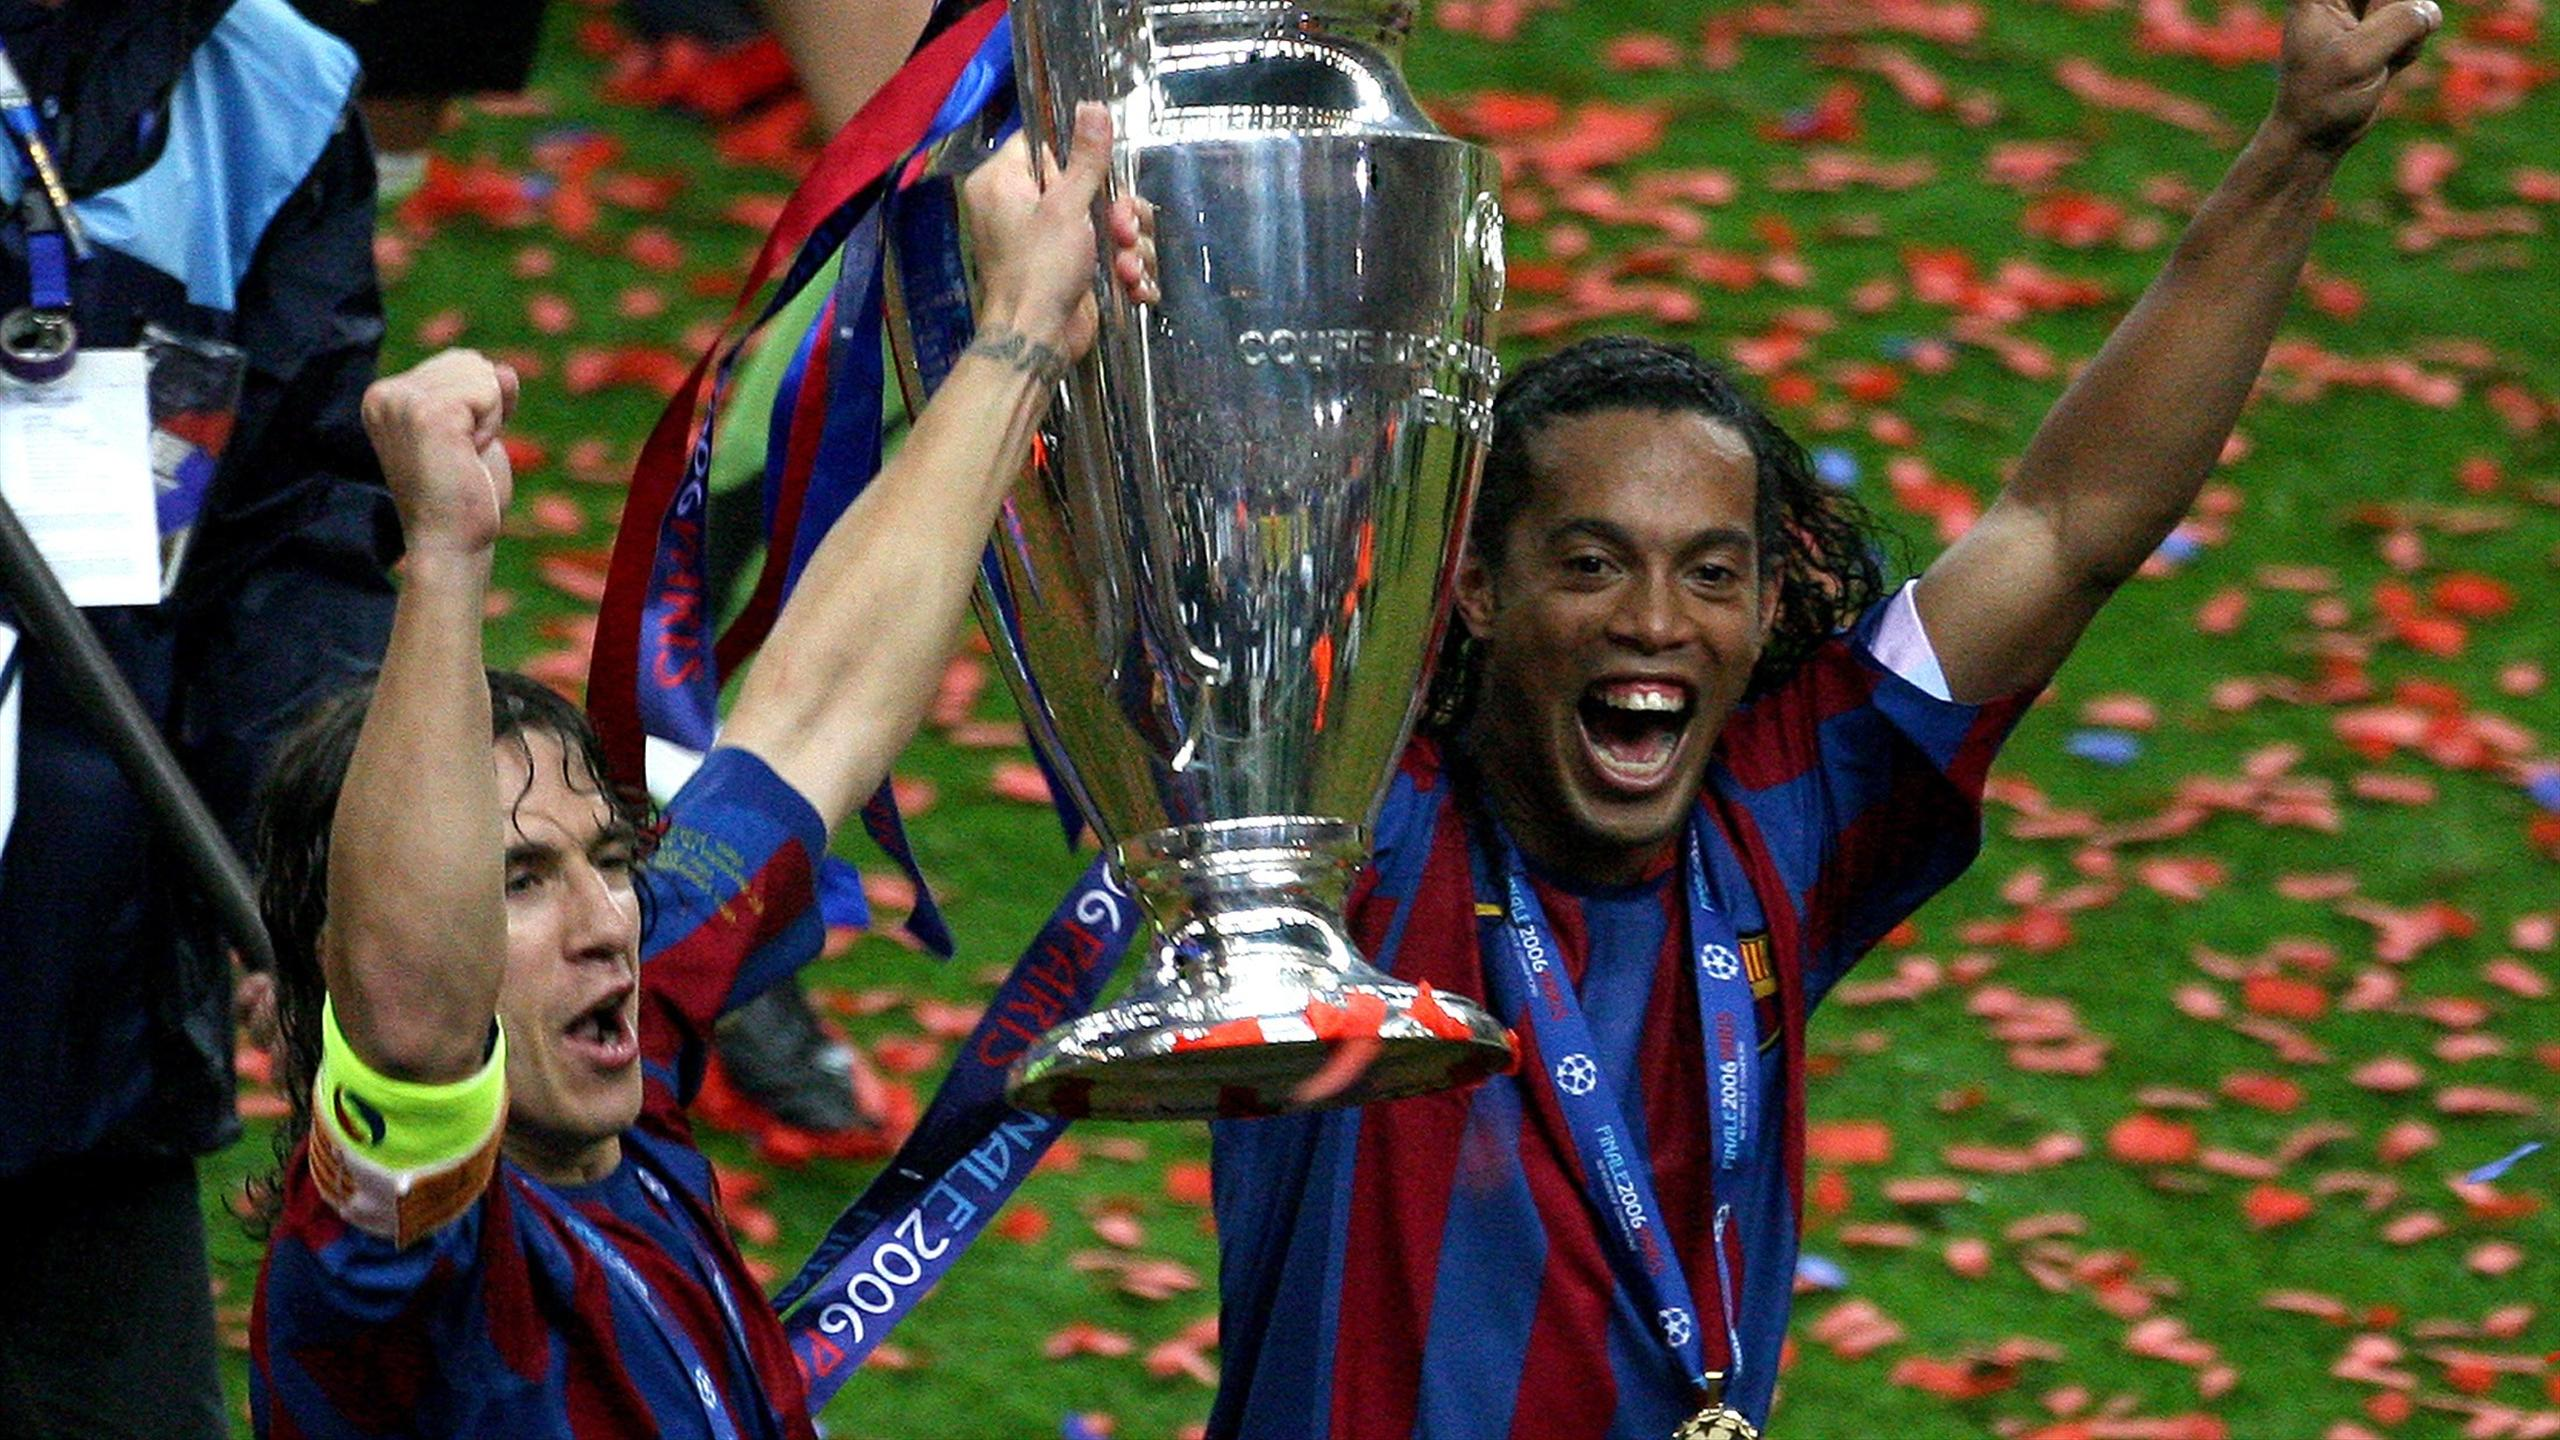 Barcelona's Ronaldinho of Brazil (R) celebrates with Carles Puyol after winning the Champions League final against Arsenal at the Stade de France